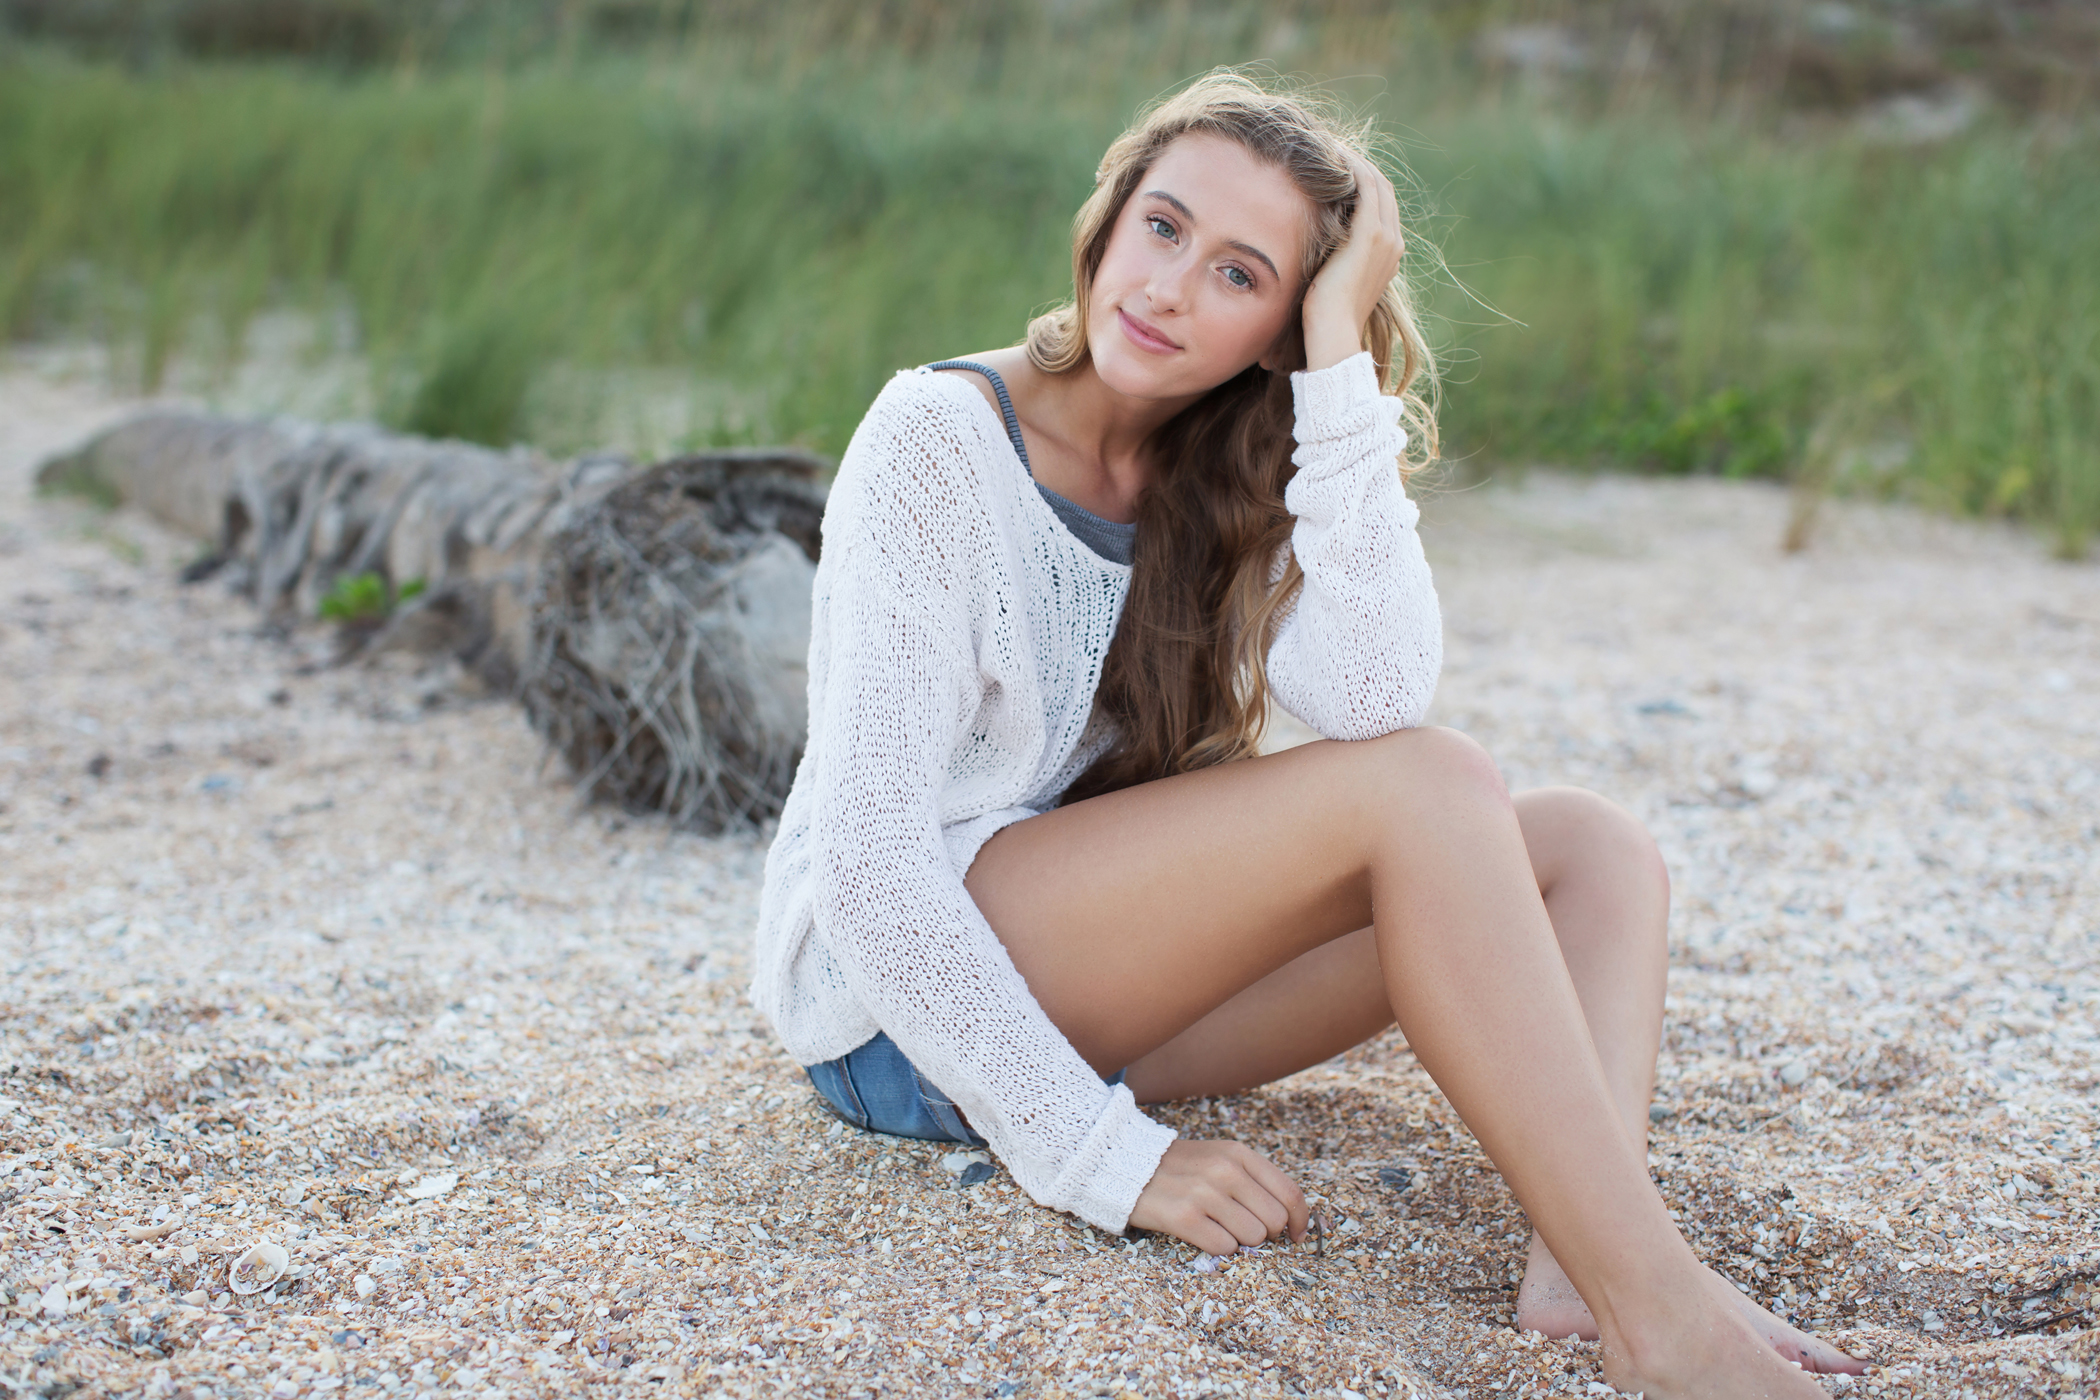 ponte vedra beach senior photos